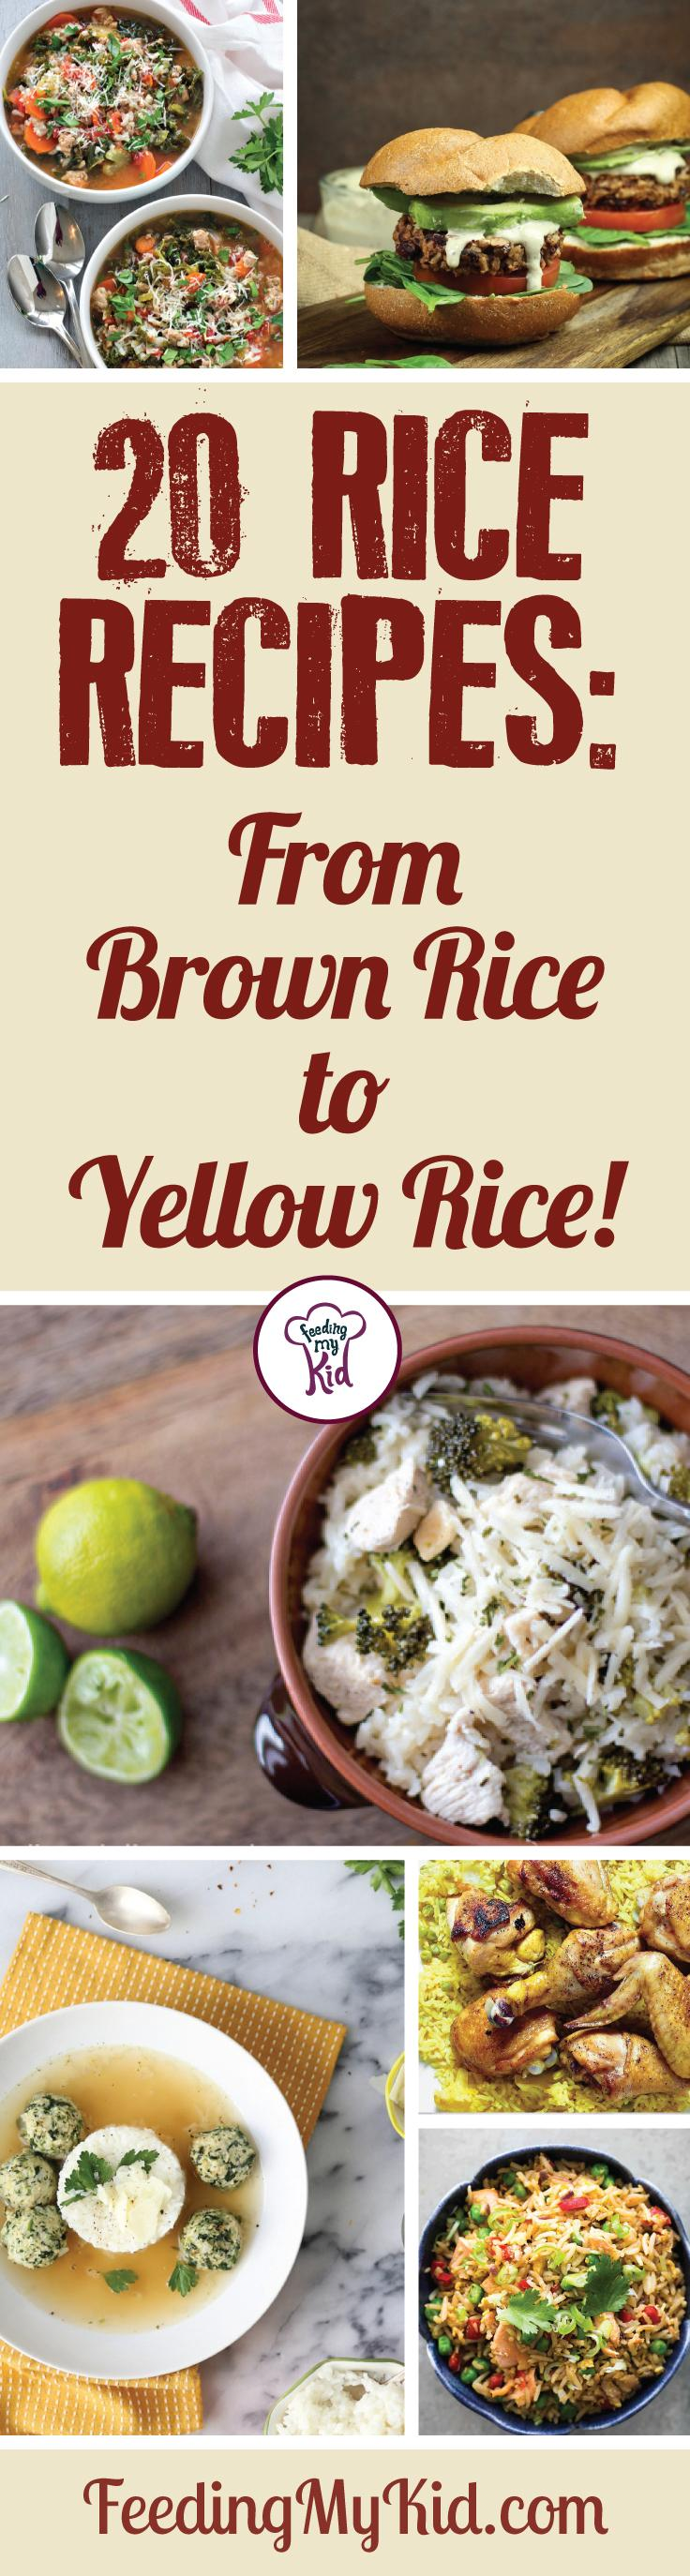 Try these amazing rice recipes! These recipes make the perfect meal or side dish for lunch or dinner! Feeding My Kid is a filled with all the information you need about how to raise your kids, from healthy tips to nutritious recipes. #FeedingMyKid #ricerecipes #recipes #dinner #sidedish